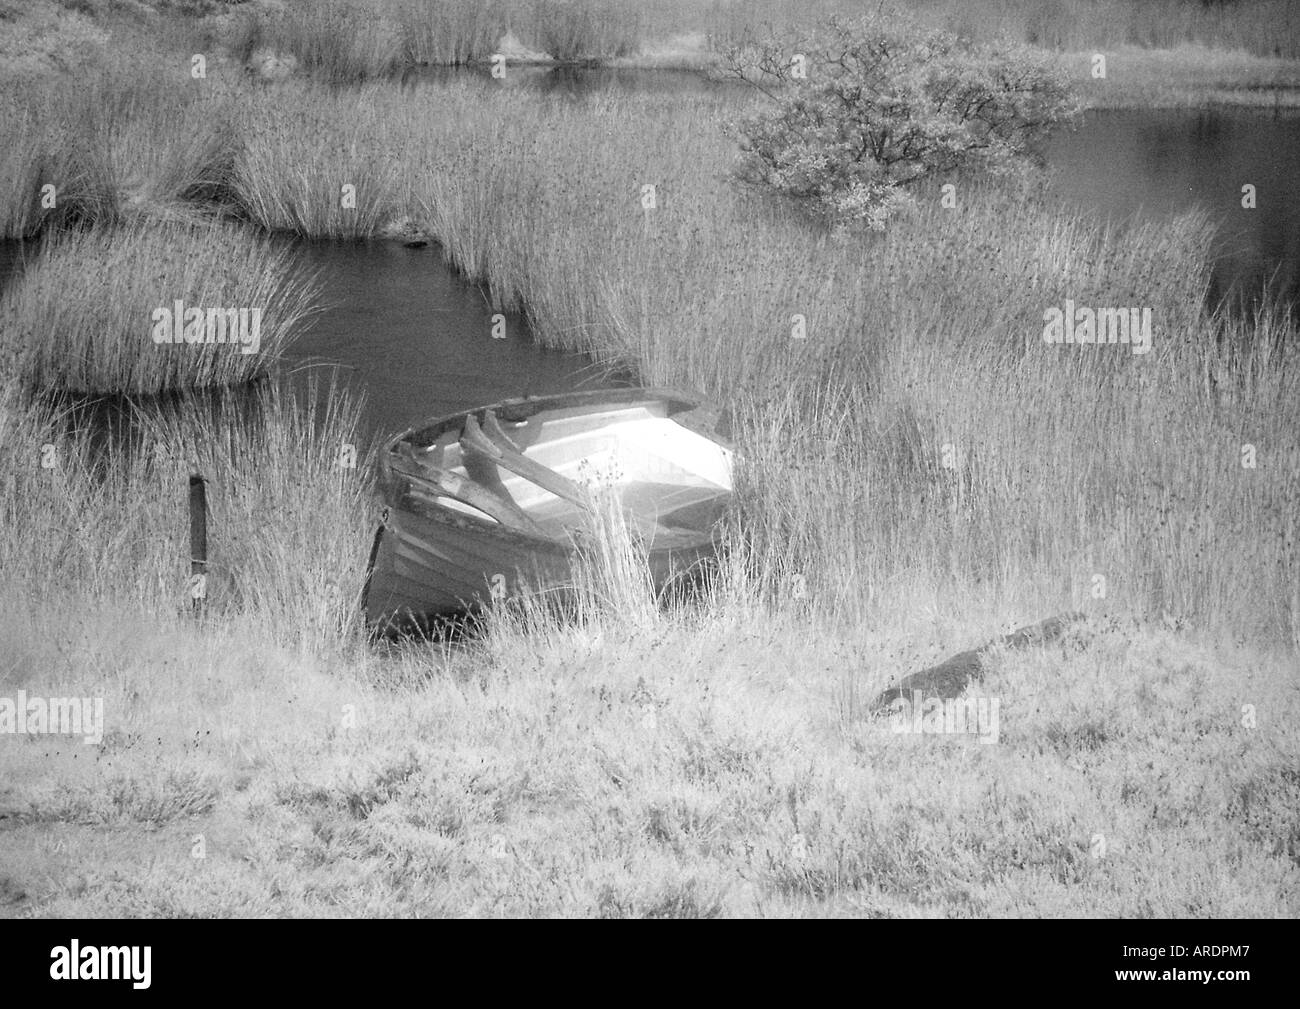 Boat on lake - monochrome - Infra red - Stock Image